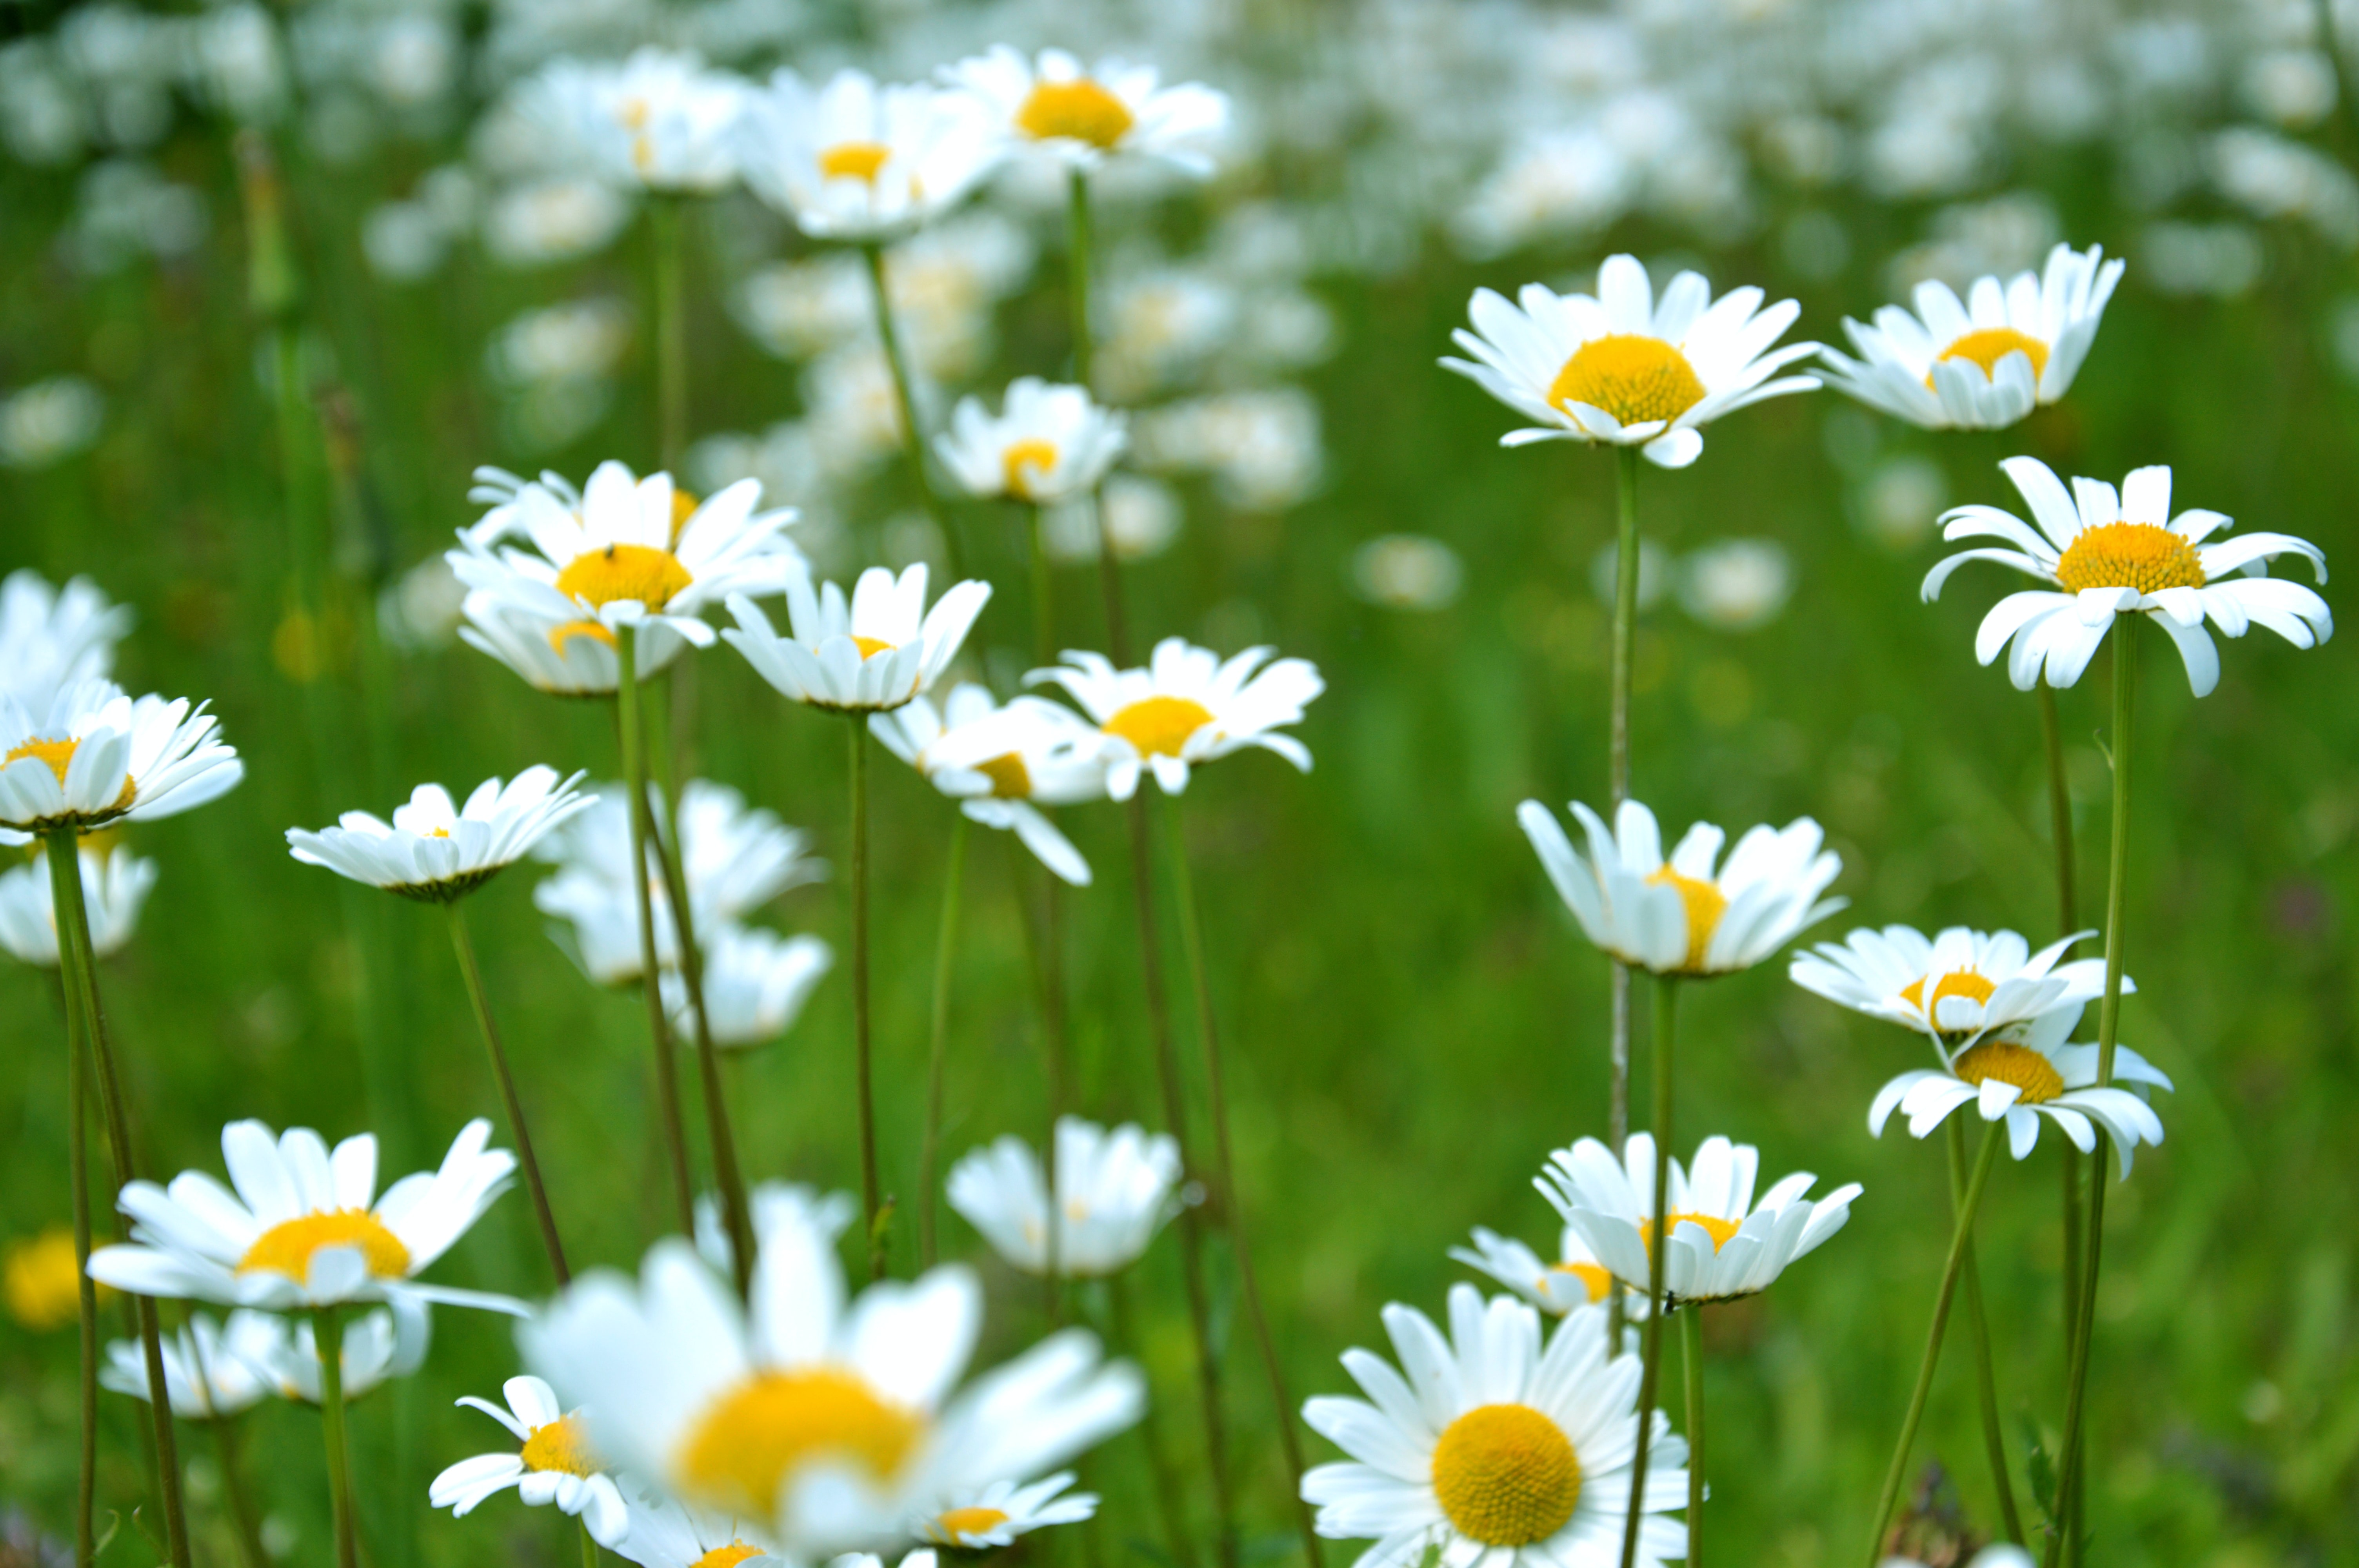 Close Up Of A Grouping Of White Daisy Flowers